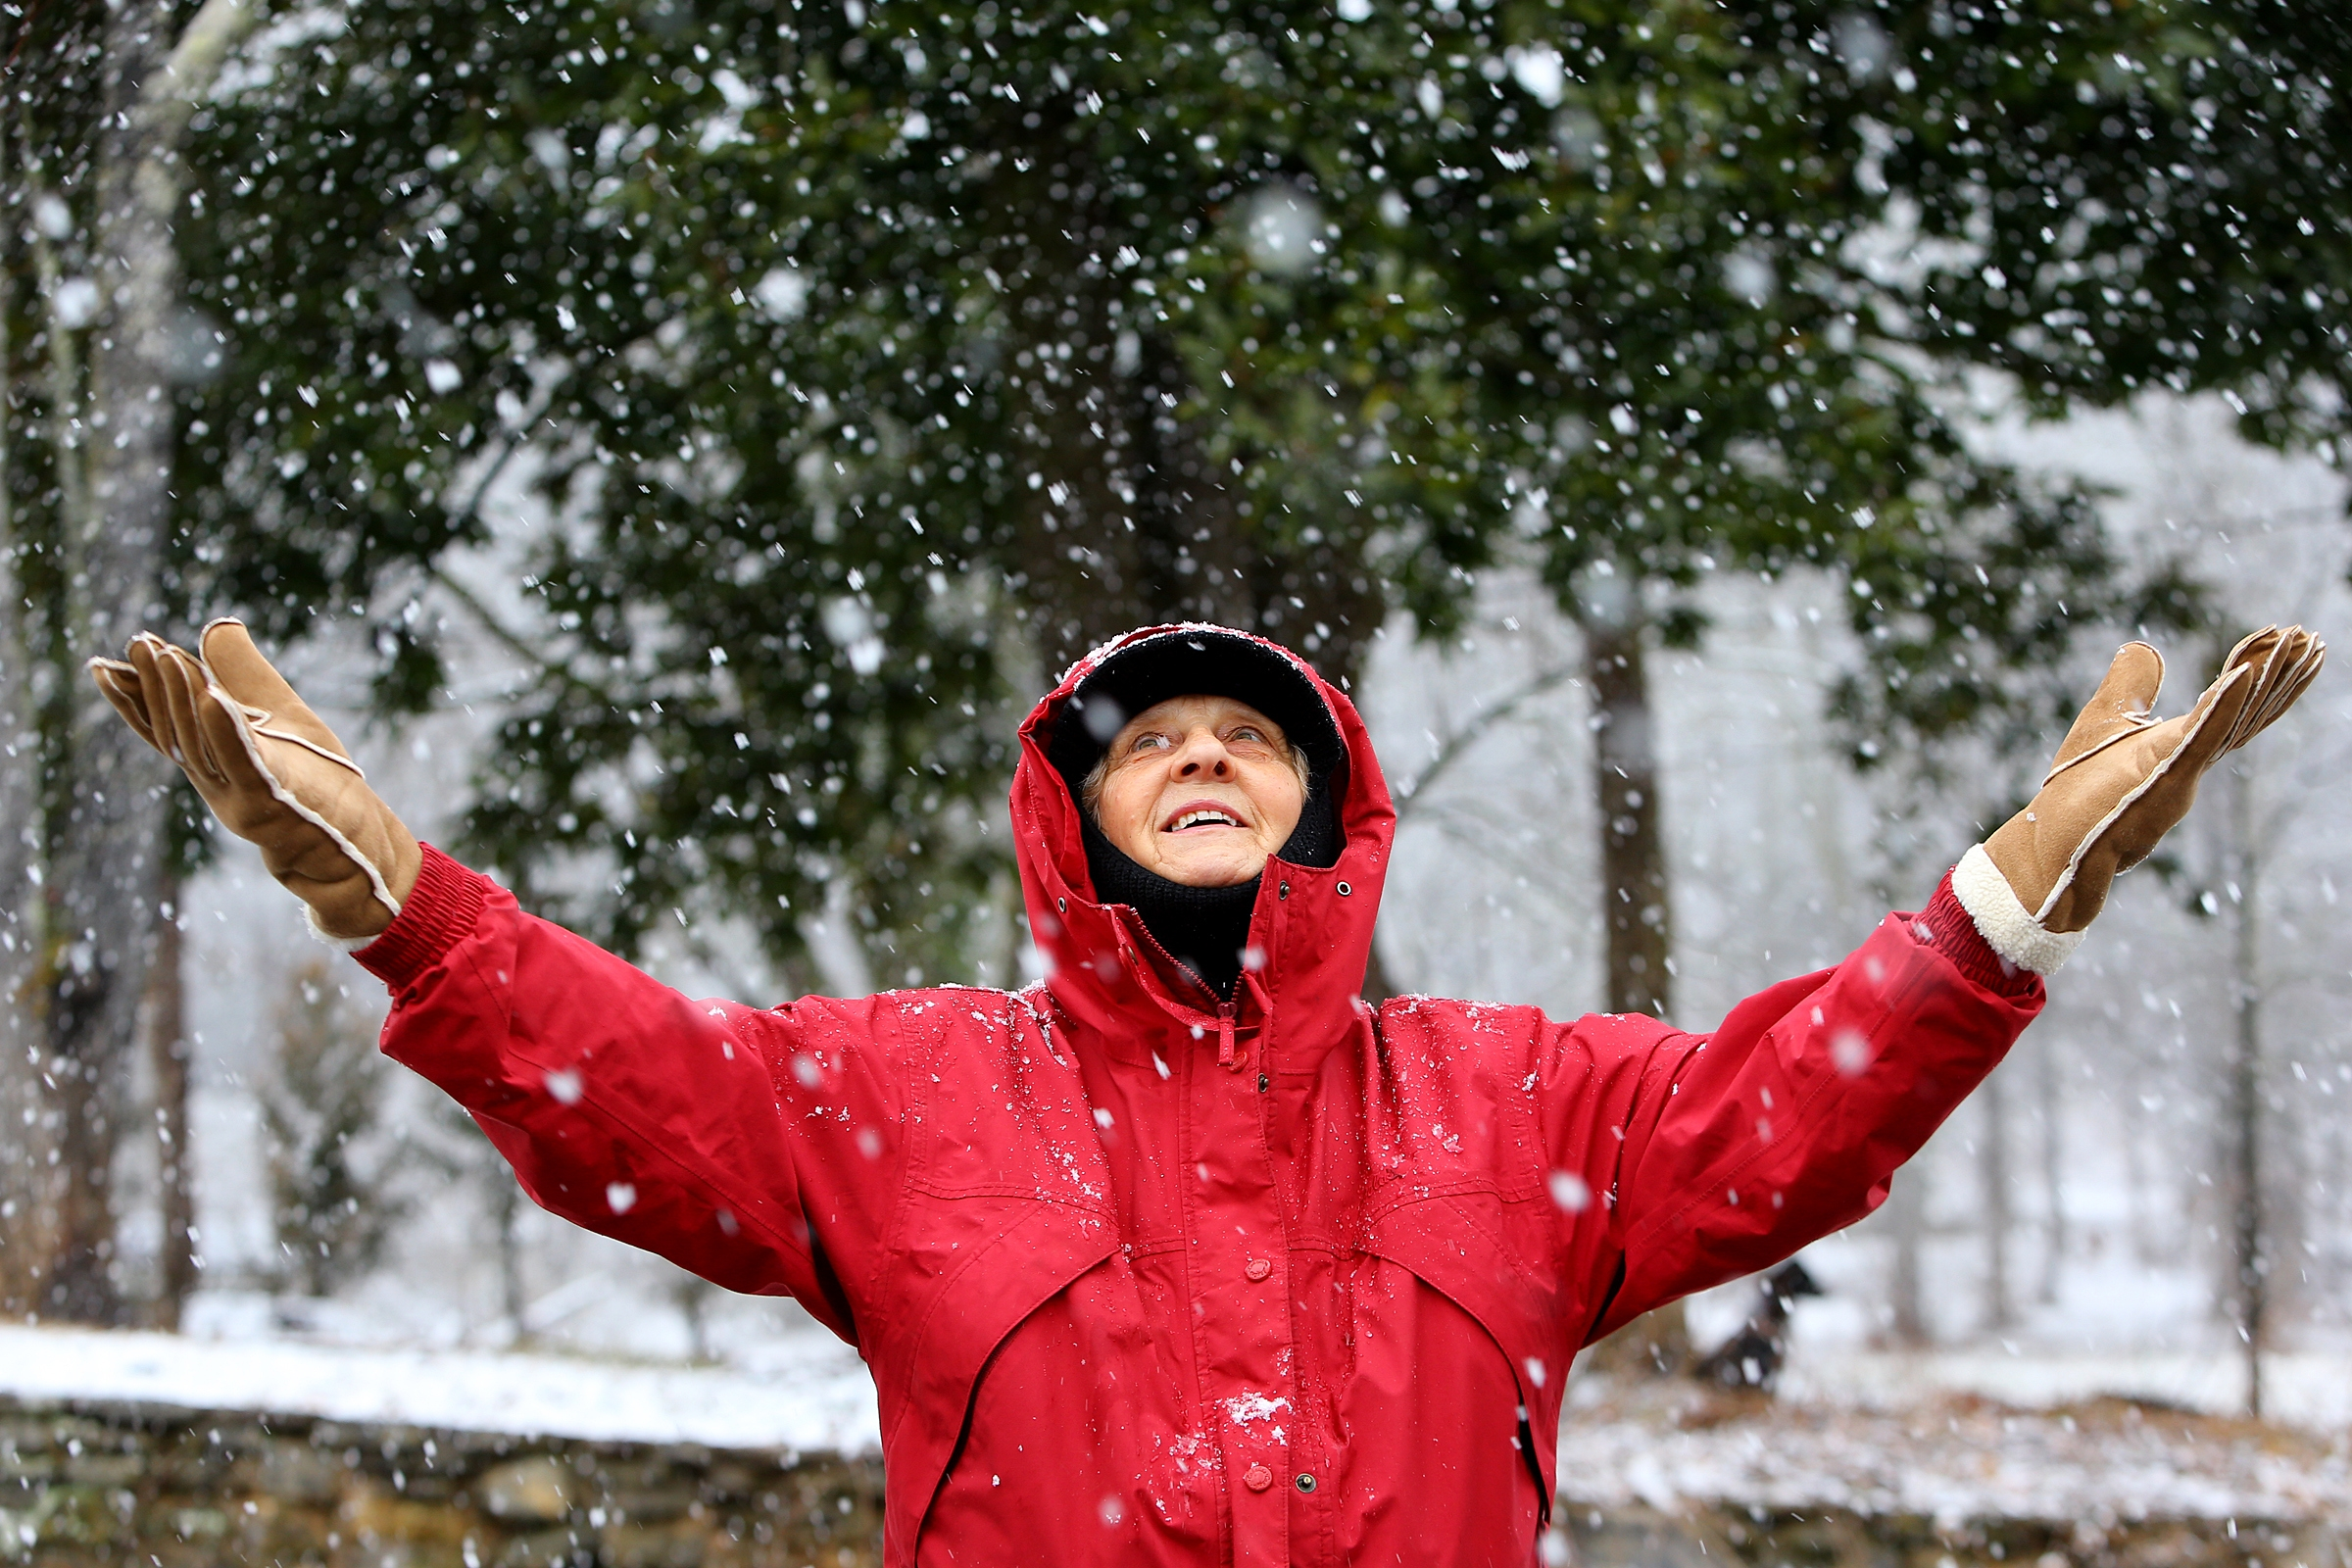 Loretta Cantrell, 75, holds out her hands as snow falls while she walks Tuesday in Helen, Ga. A storm of ice and snow is zeroing in on the South. Our area will be spared.